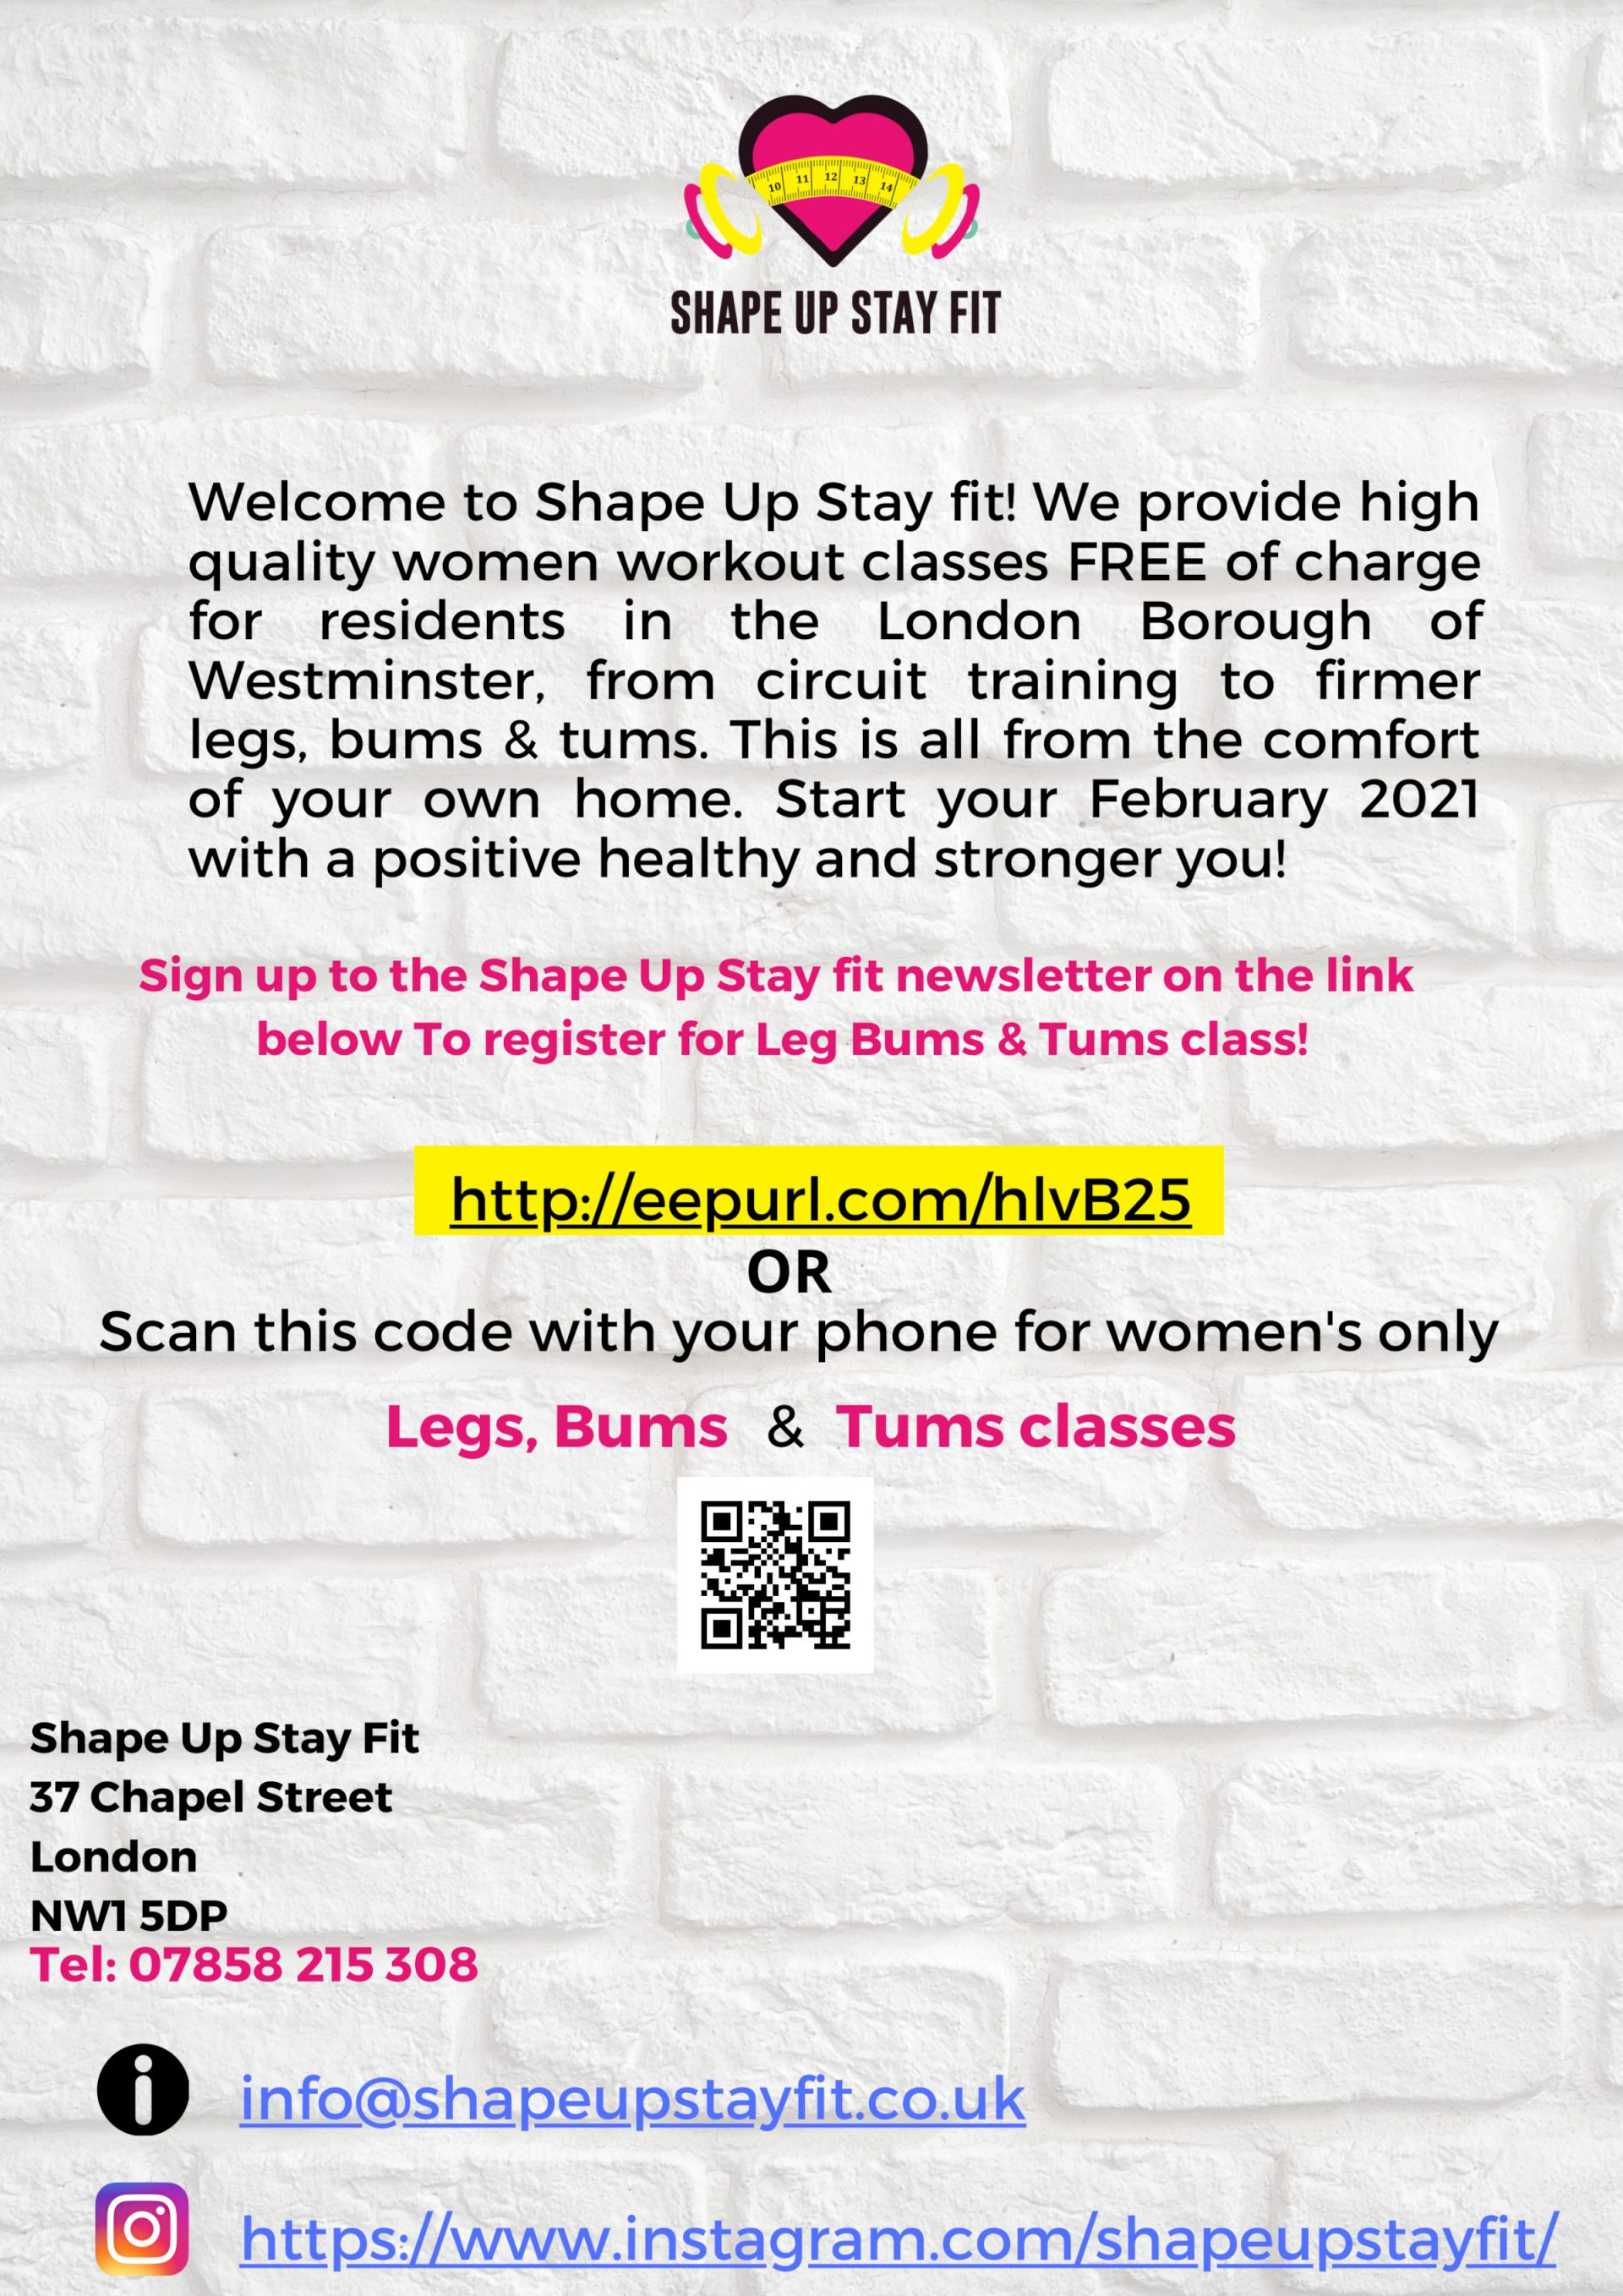 Welcome to Shape Up Stay fit! We provide high quality women workout classes FREE of charge for residents in the London Borough of Westminster, from circuit training to firmer legs, bums & tums. This is all from the comfort of your own home. Start your February 2021 with a positive healthy and stronger you!  Sign up to the Shape Up Stay fit newsletter on the link below To register for Leg Bums & Tums class! http://eepurl.com/hlvB25  OR  Shape Up Stay Fit 37 Chapel Street London NW1 5DP  Tel: 07858 215 308  info@shapeupstayfit.co.uk https://www.instagram.com/shapeupstayfit/